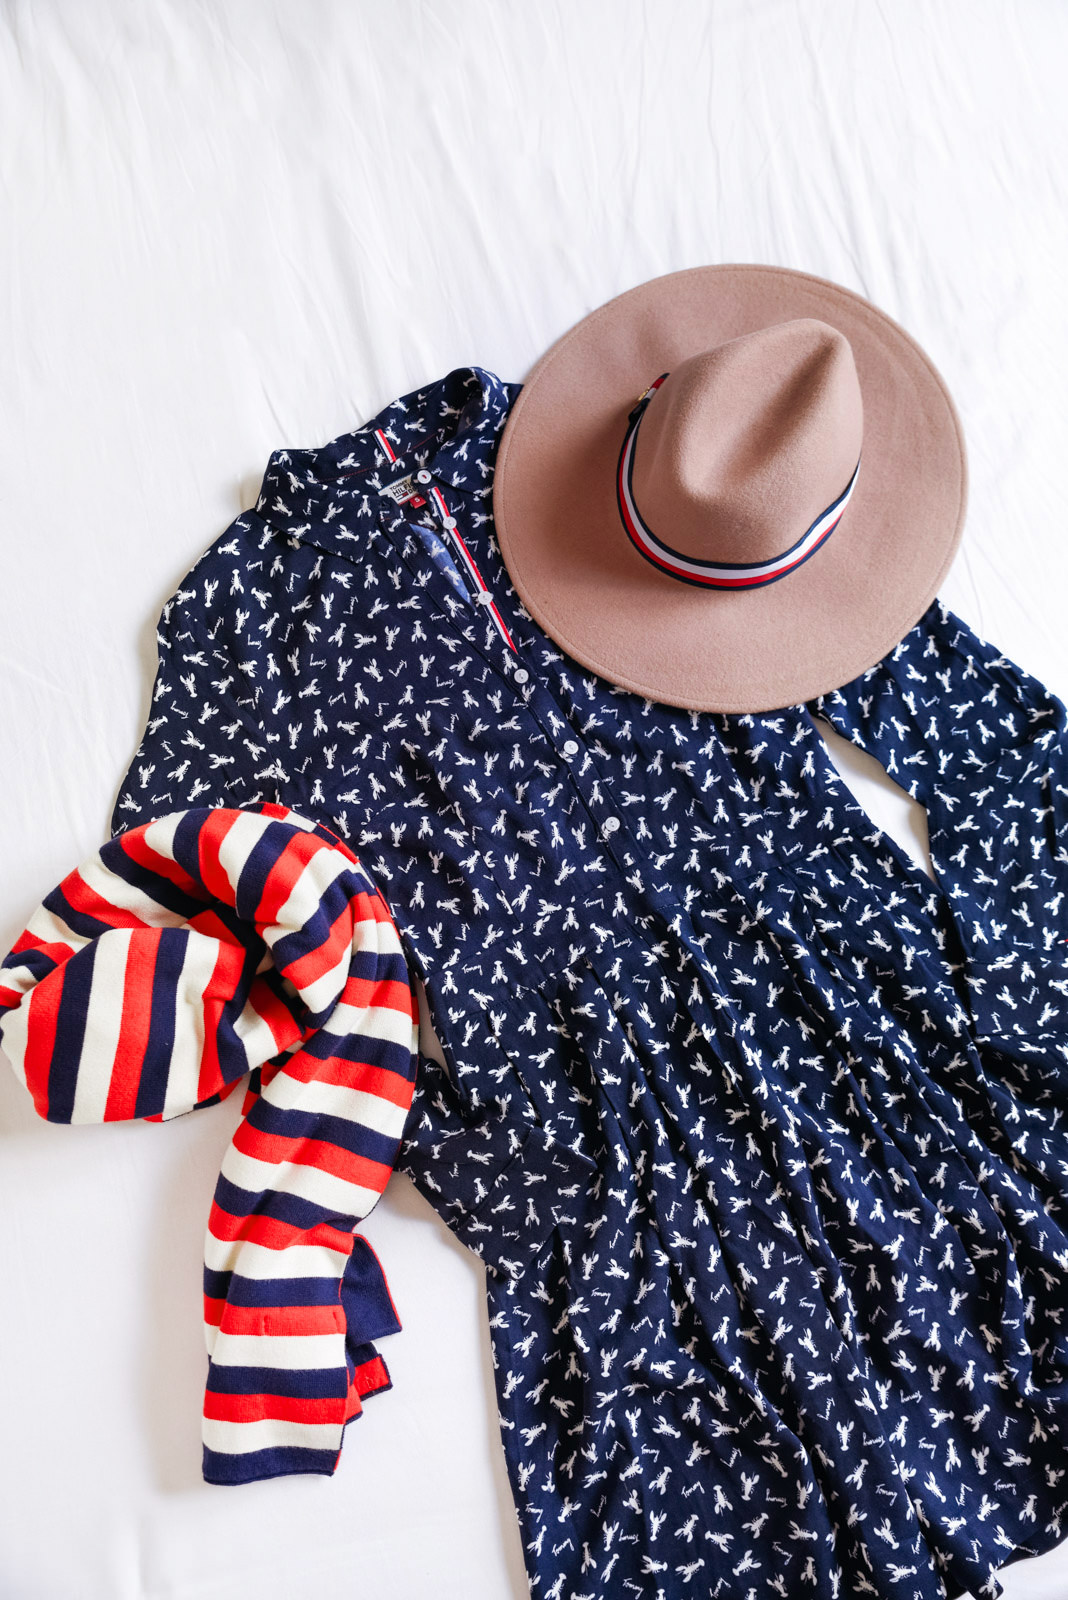 Blog-Mode-And-The-City-Lifestyle-Cinq-Petites-Choses-tommy-hilfiger2